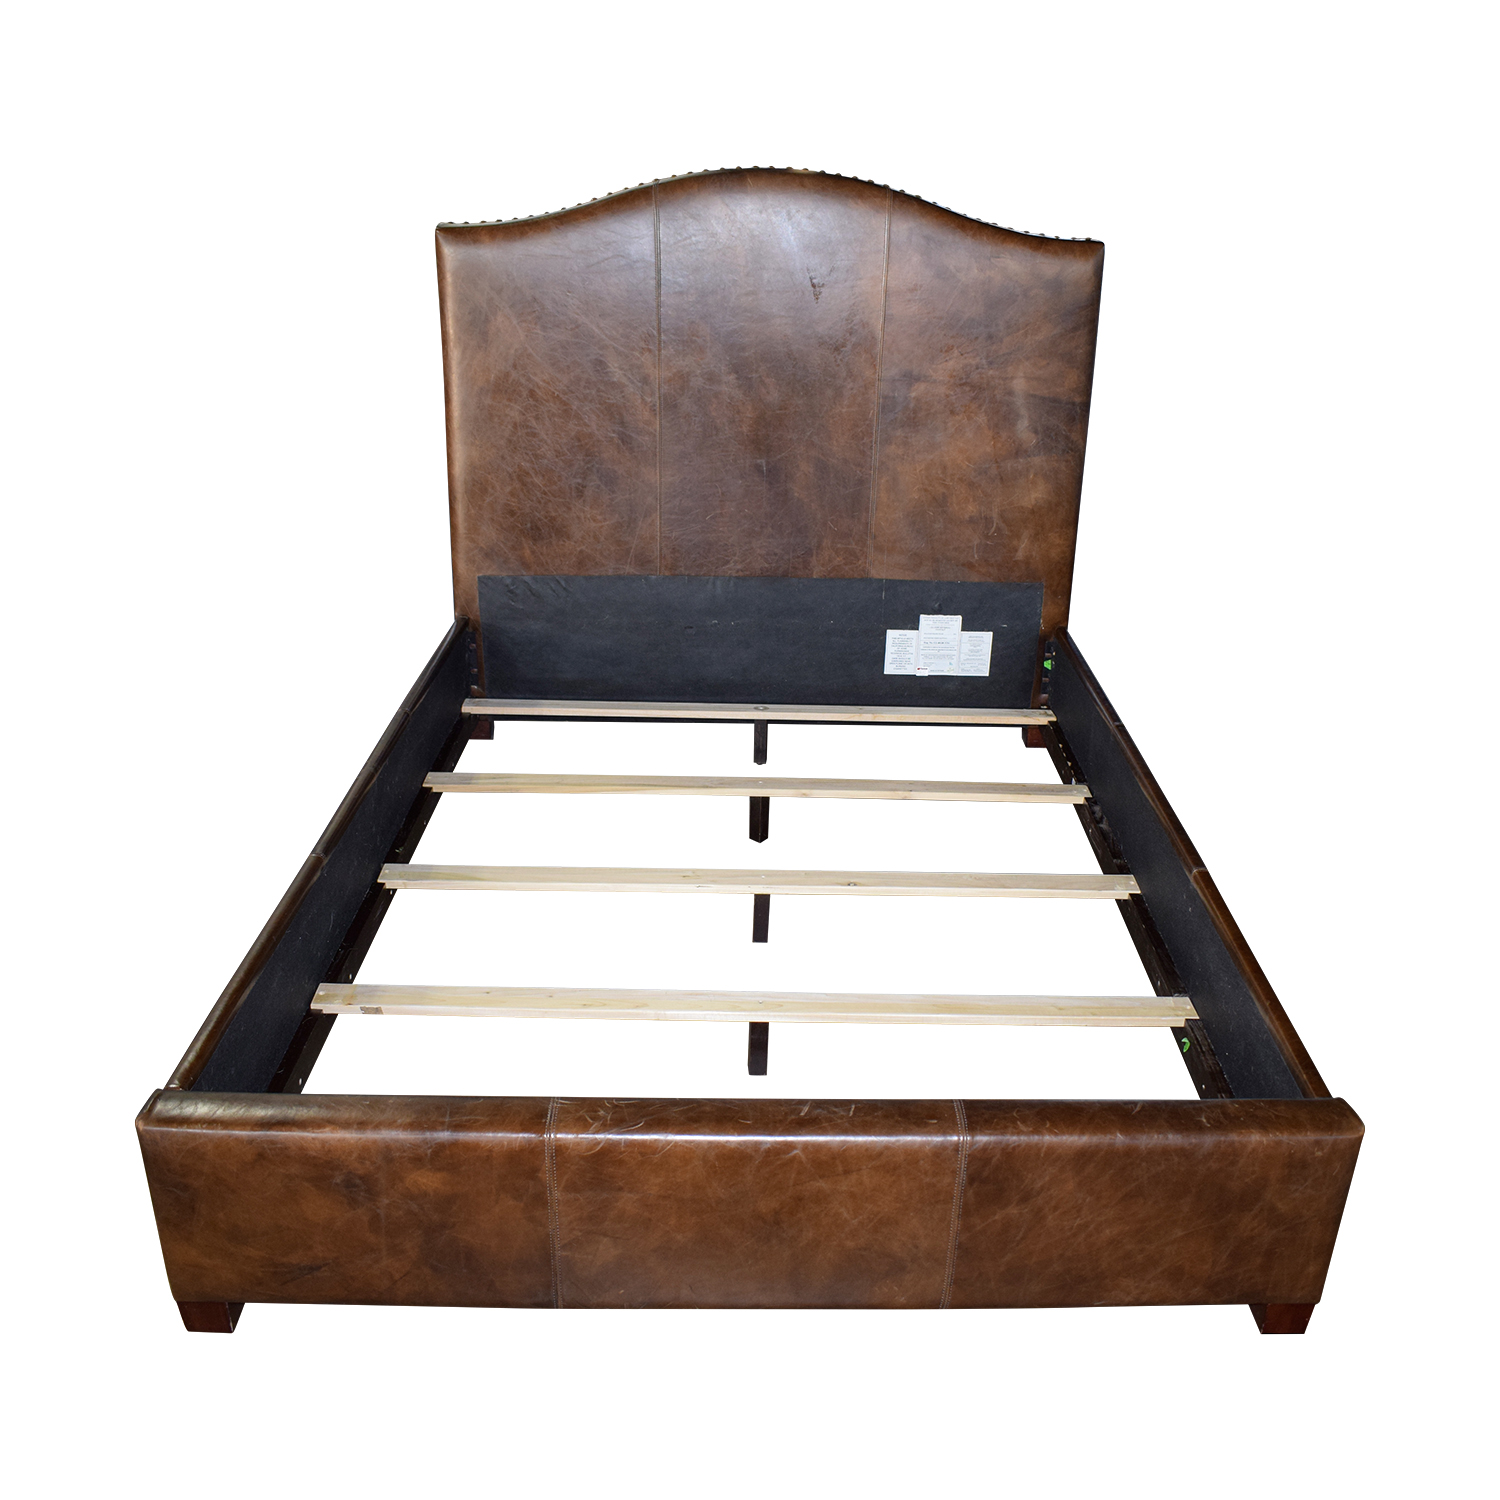 Crate & Barrel Crate & Barrel Brown Leather Queen Bed Frame on sale